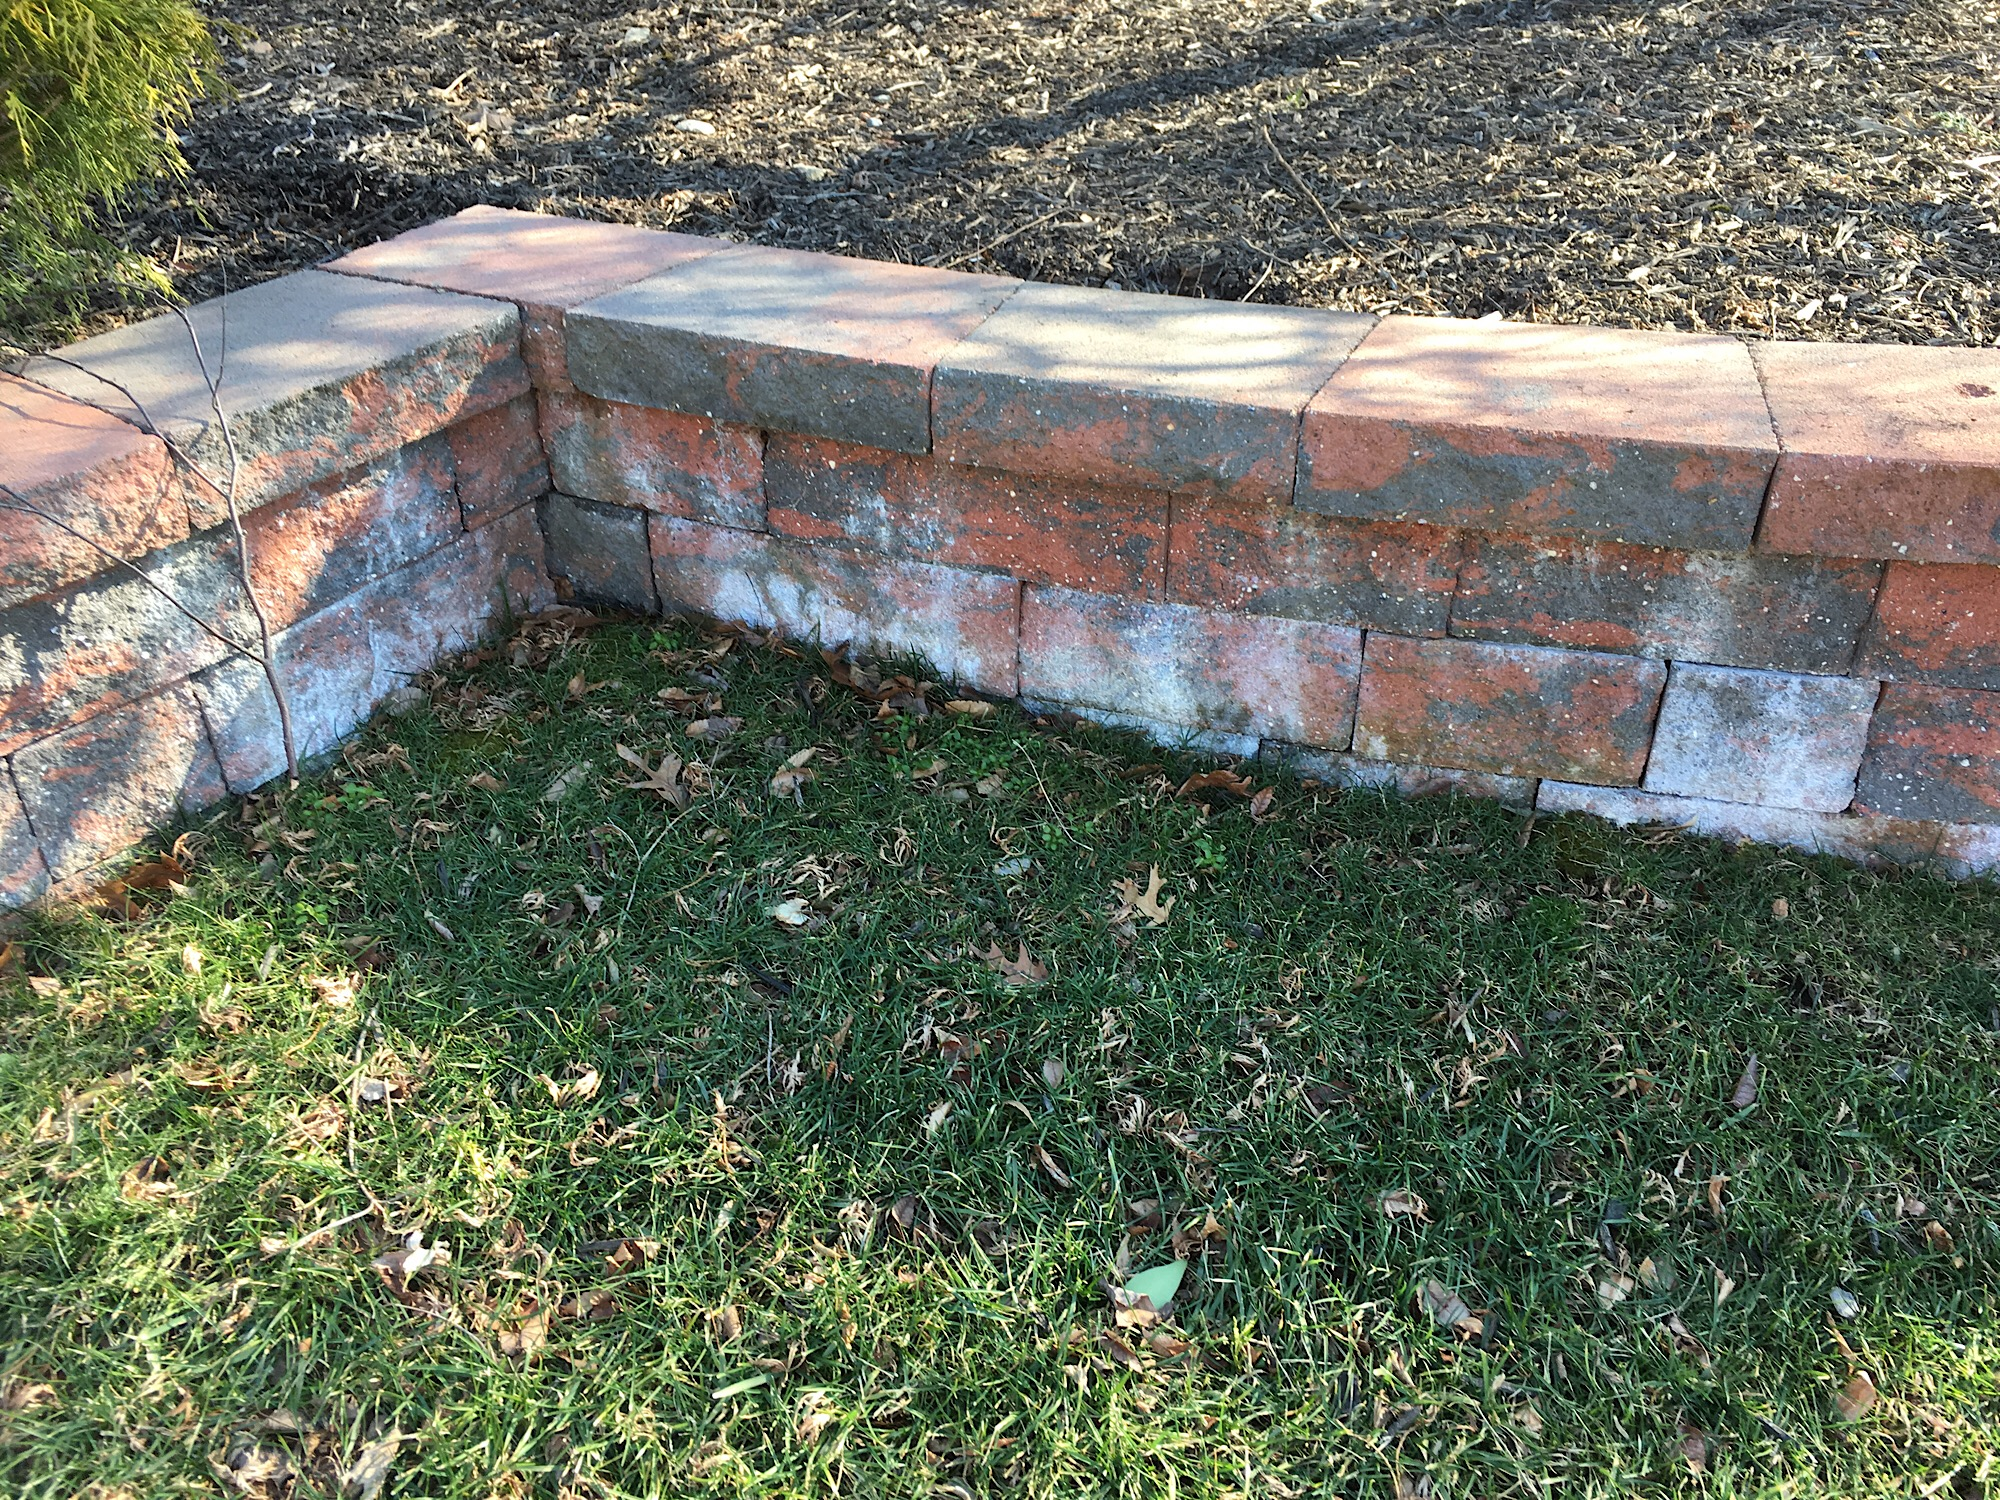 How to clean Efflorescence off paver? (furnace, drain, stone